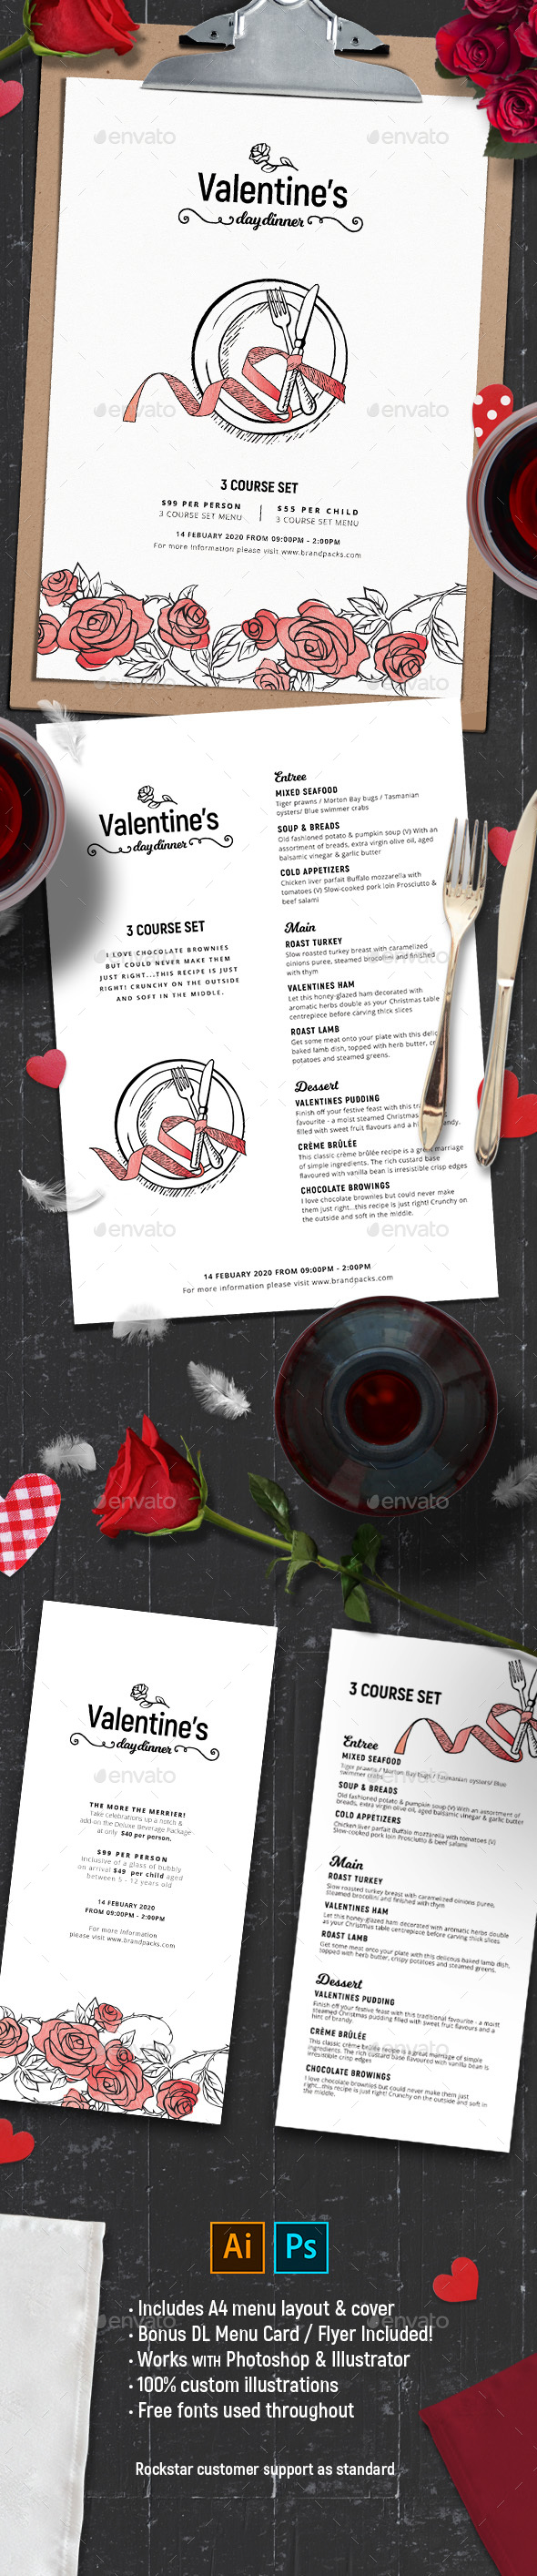 Valentines Menu Template - Food Menus Print Templates